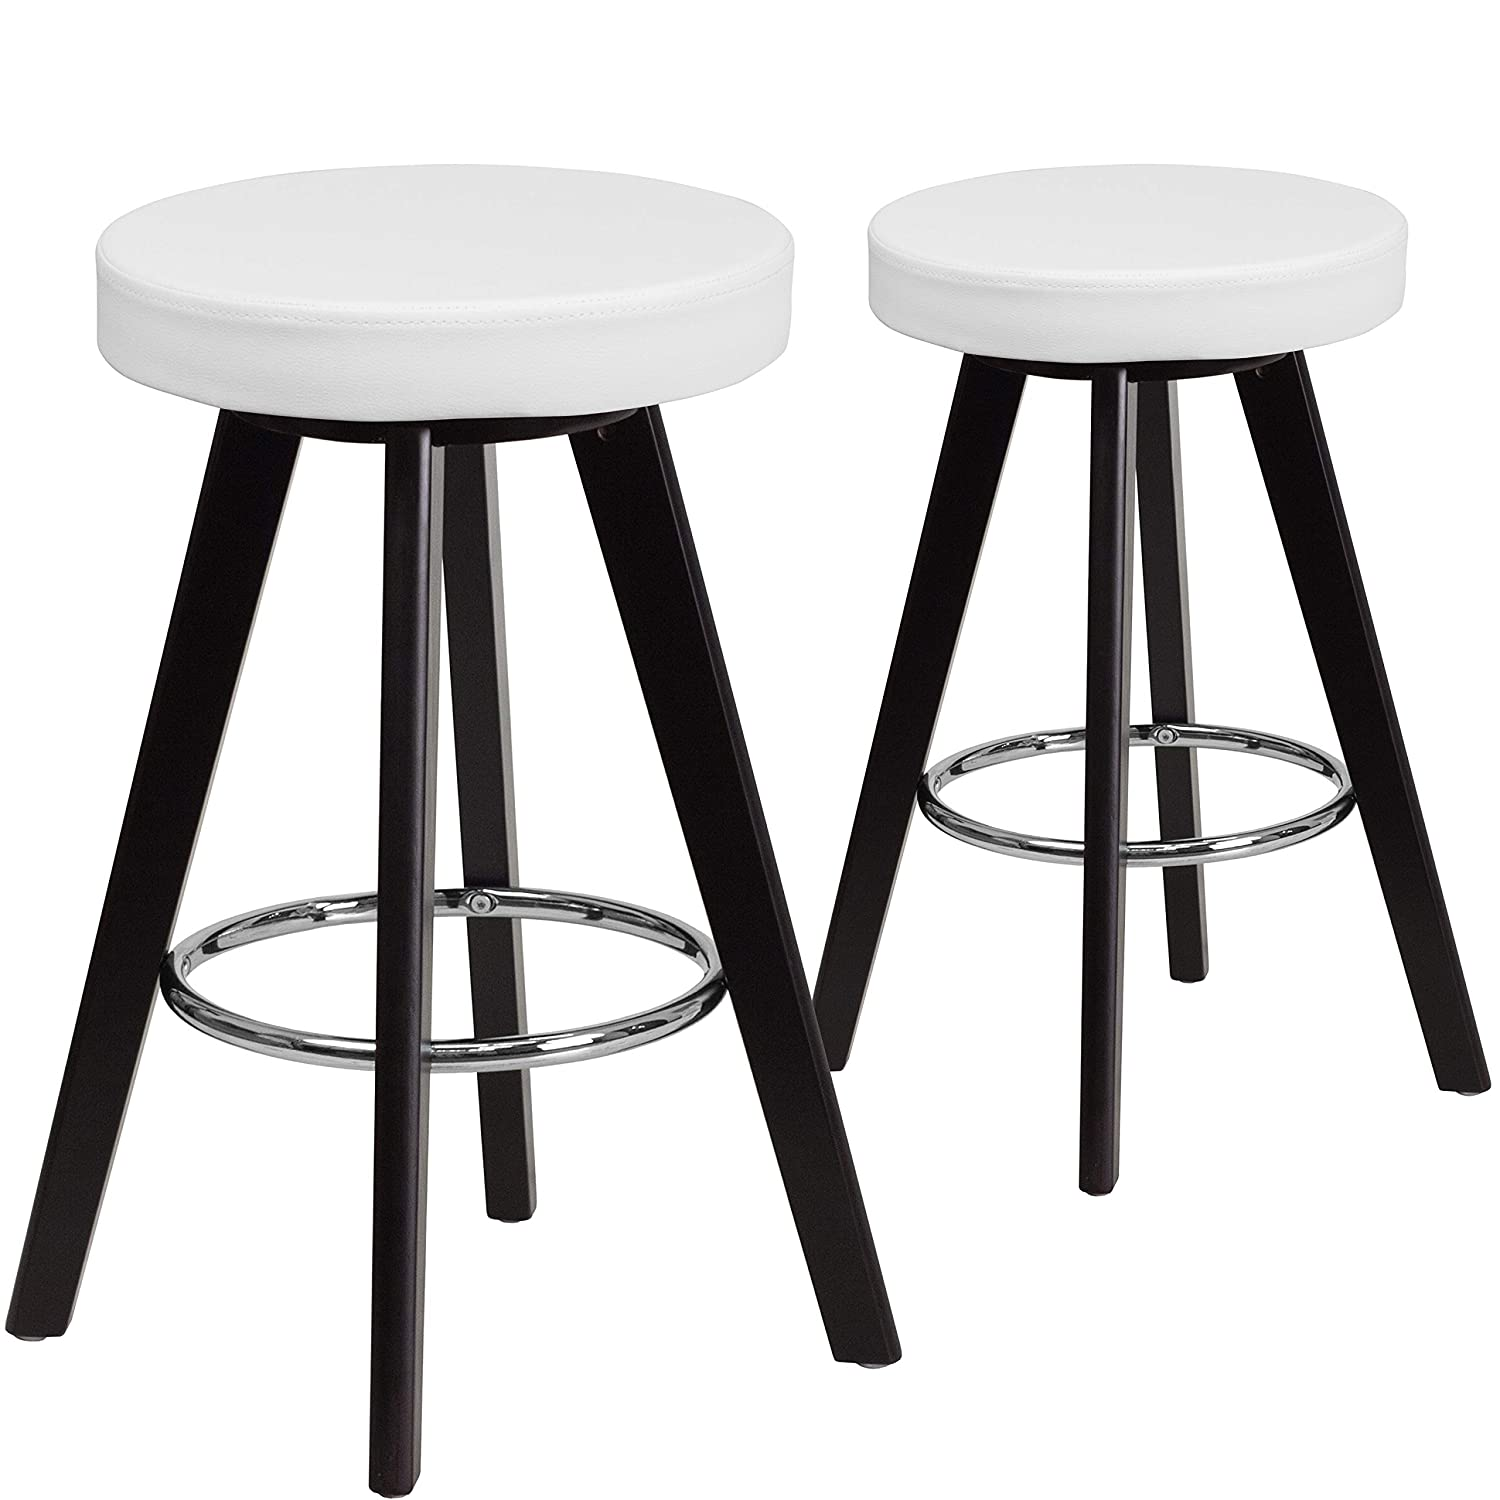 Trenton Series 24 High Contemporary Cappuccino Wood Counter Height Stool with White Vinyl Seat 2-CH-152600-WH-VY-GG Flash Furniture 2 Pk